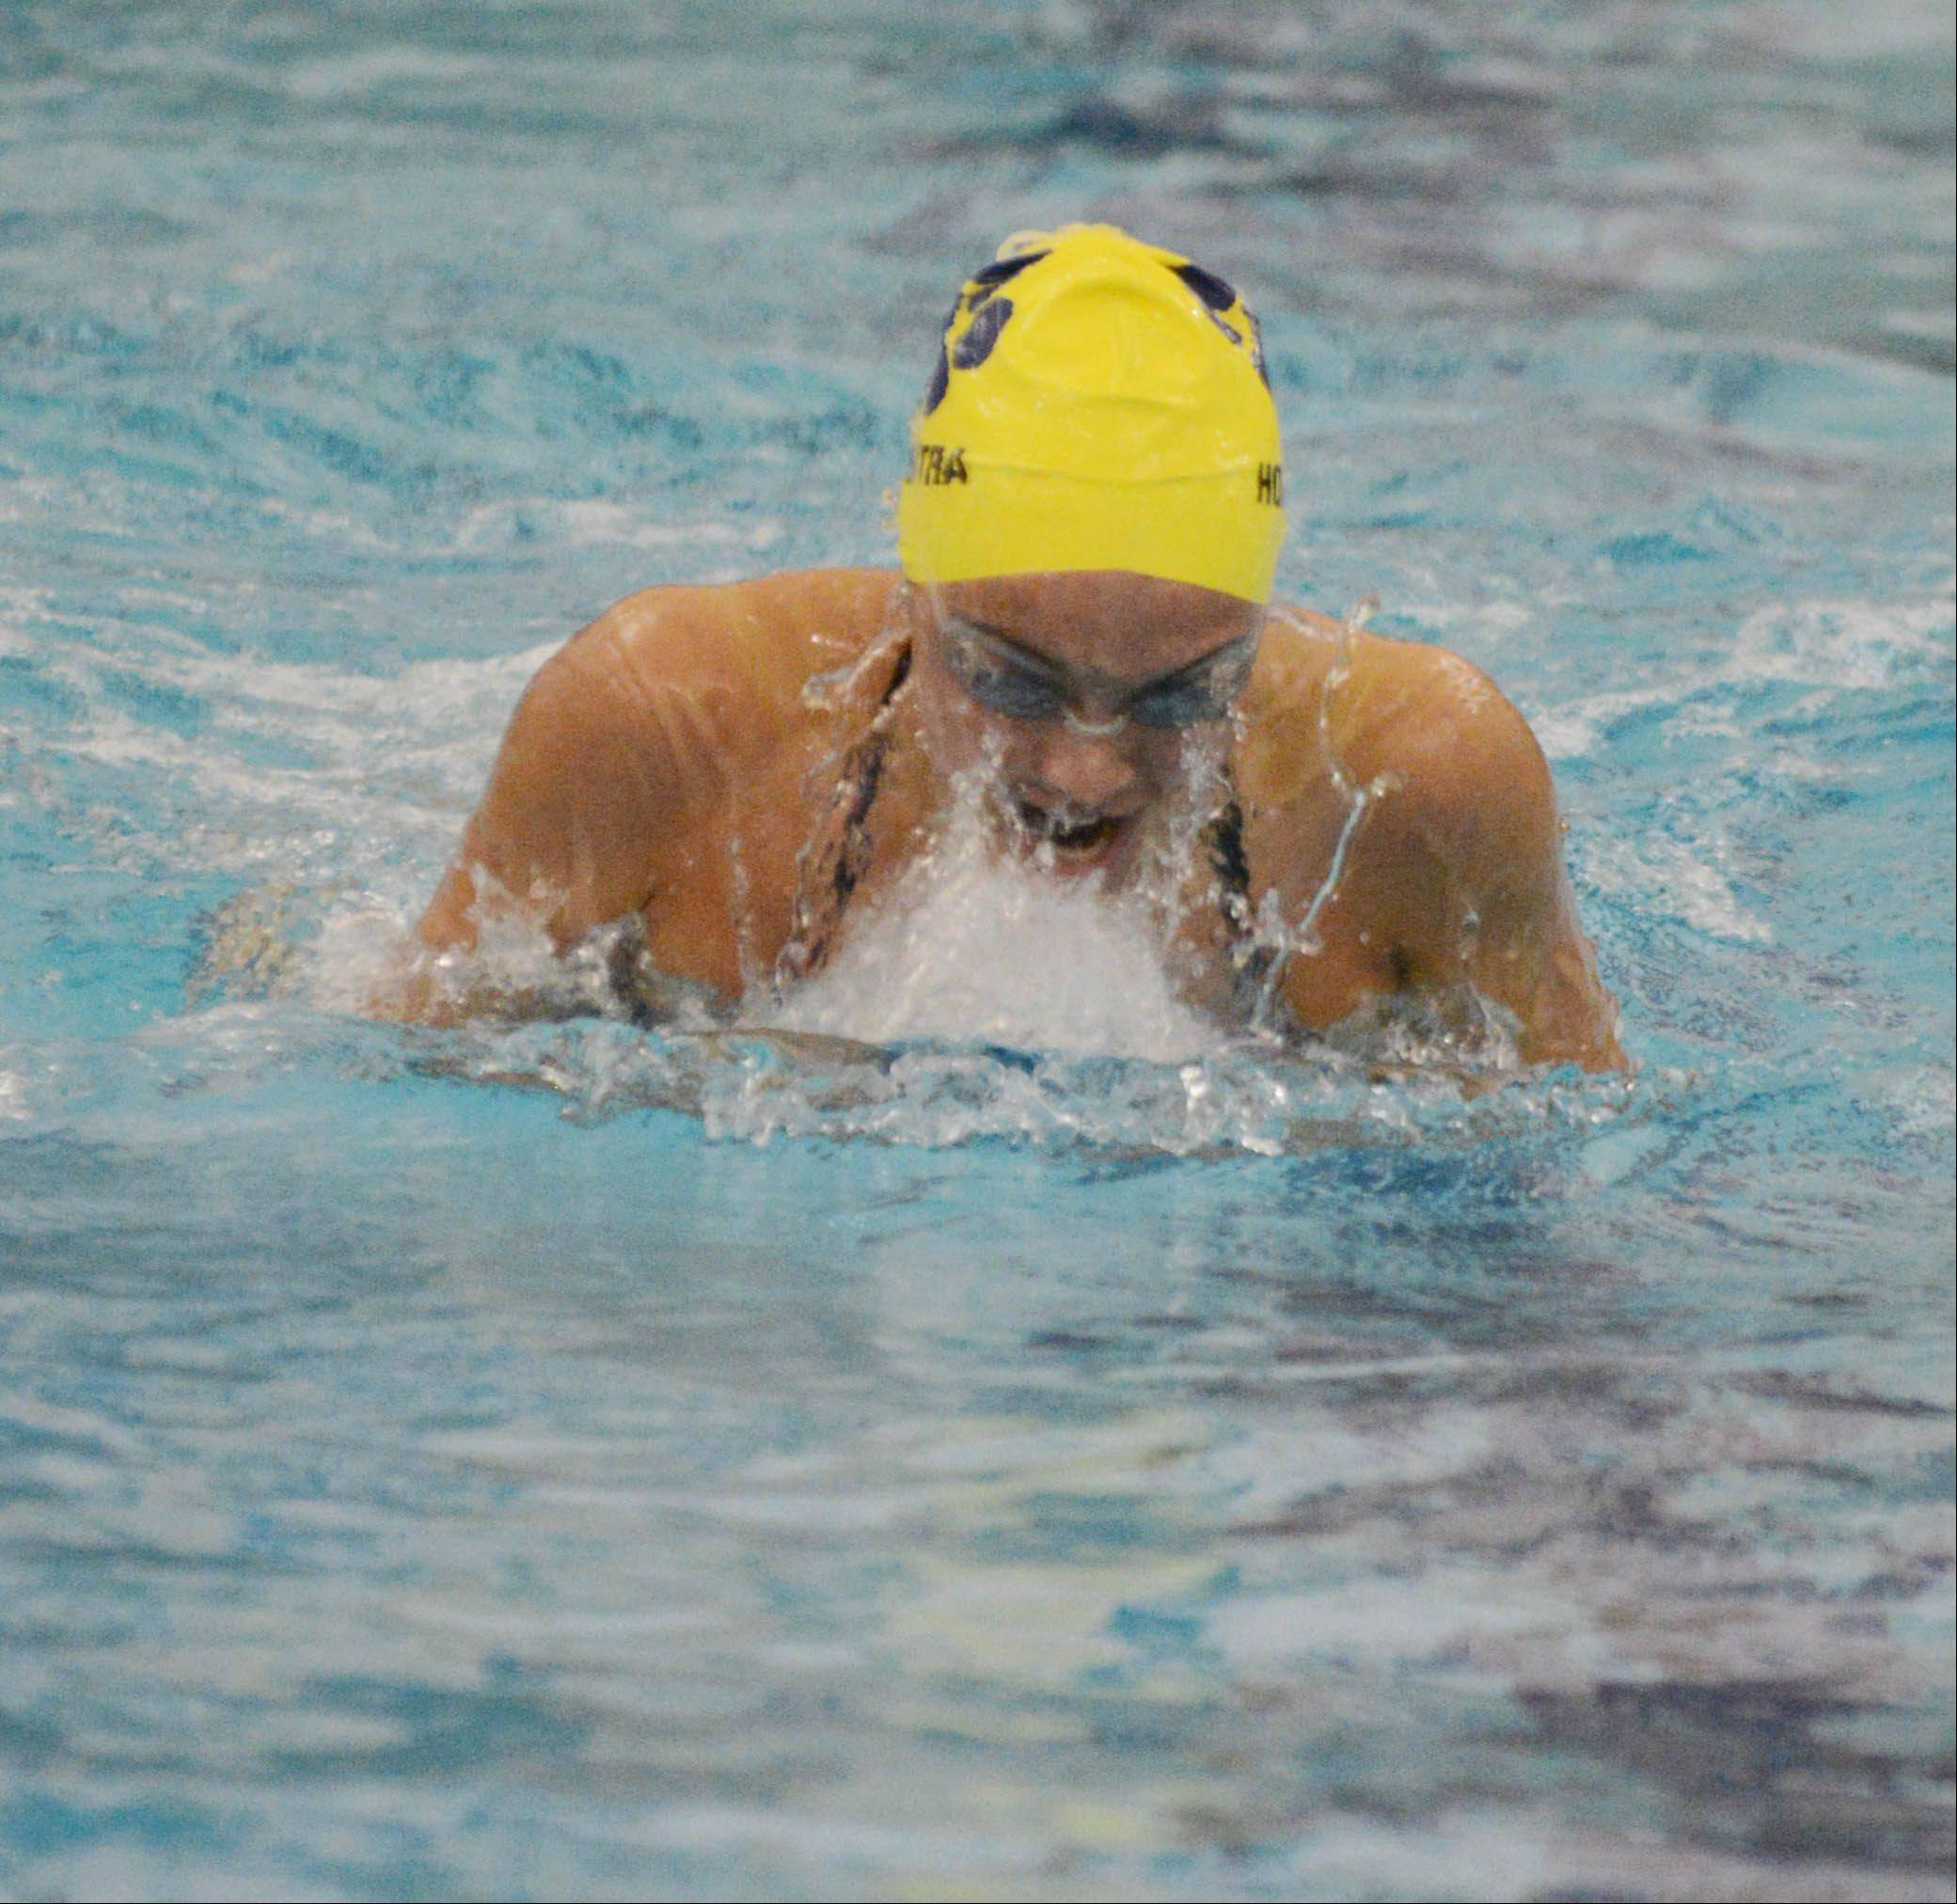 Samantha Sauer of Saint Charles North swims in the 200 IM Realy during the Neuqua Valley girls swimming invitational Saturday.